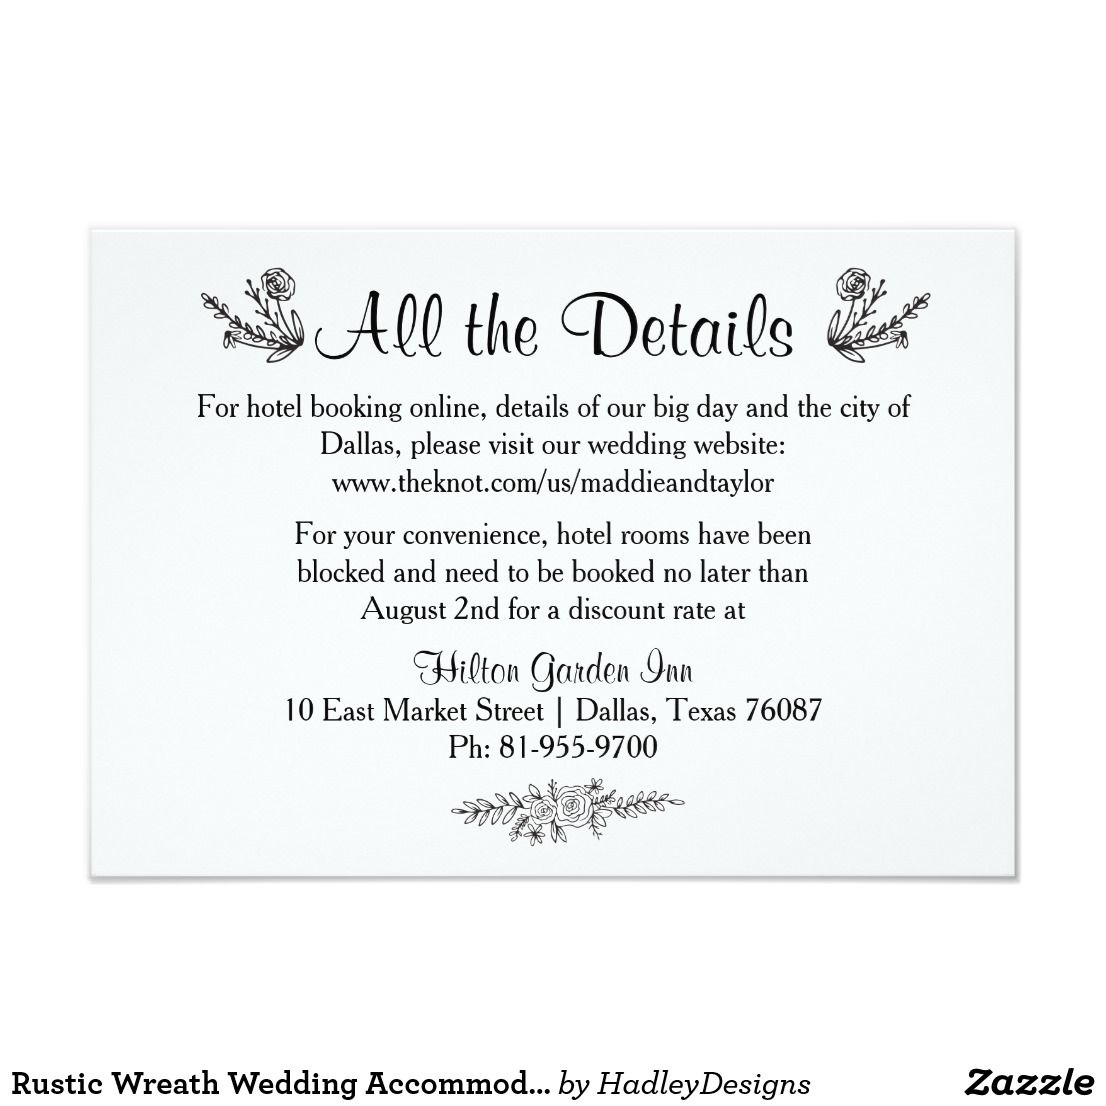 Rustic Wreath Wedding Acmodation Card: Acmodation Cards For Wedding Invitations At Websimilar.org